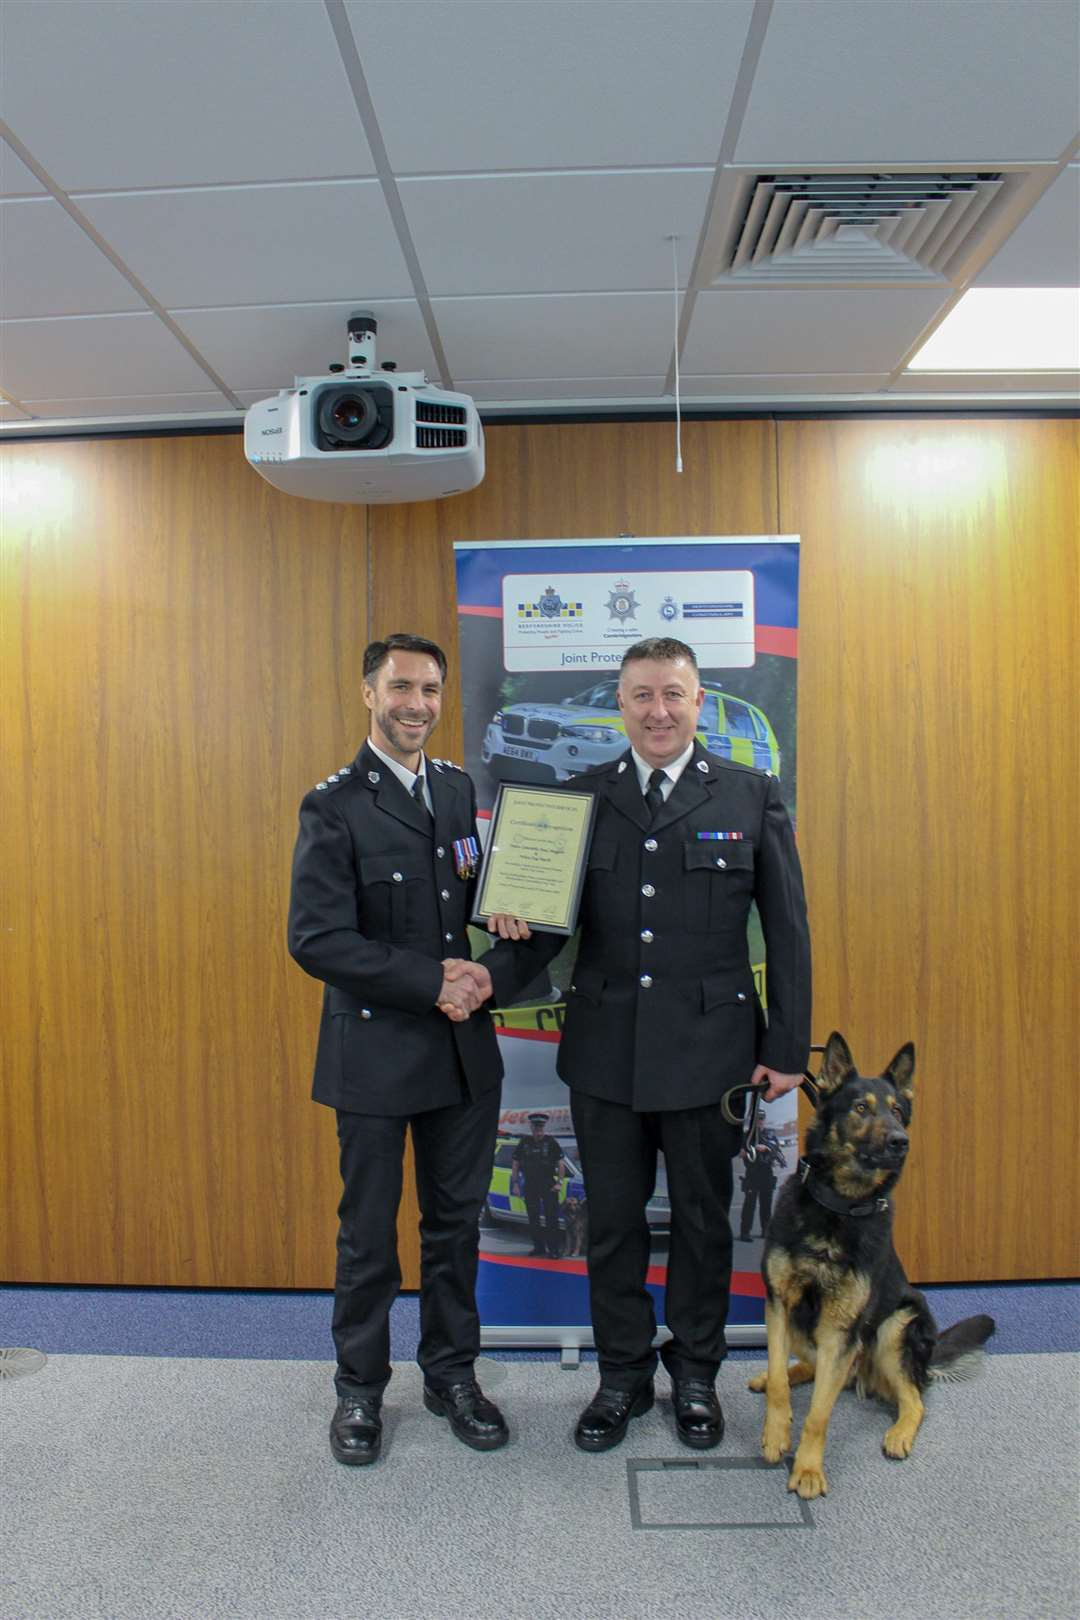 Chief Inspector Robin Sissons (left) awarding the certificate to PC Paul Huggett and police dog Darth (6158642)